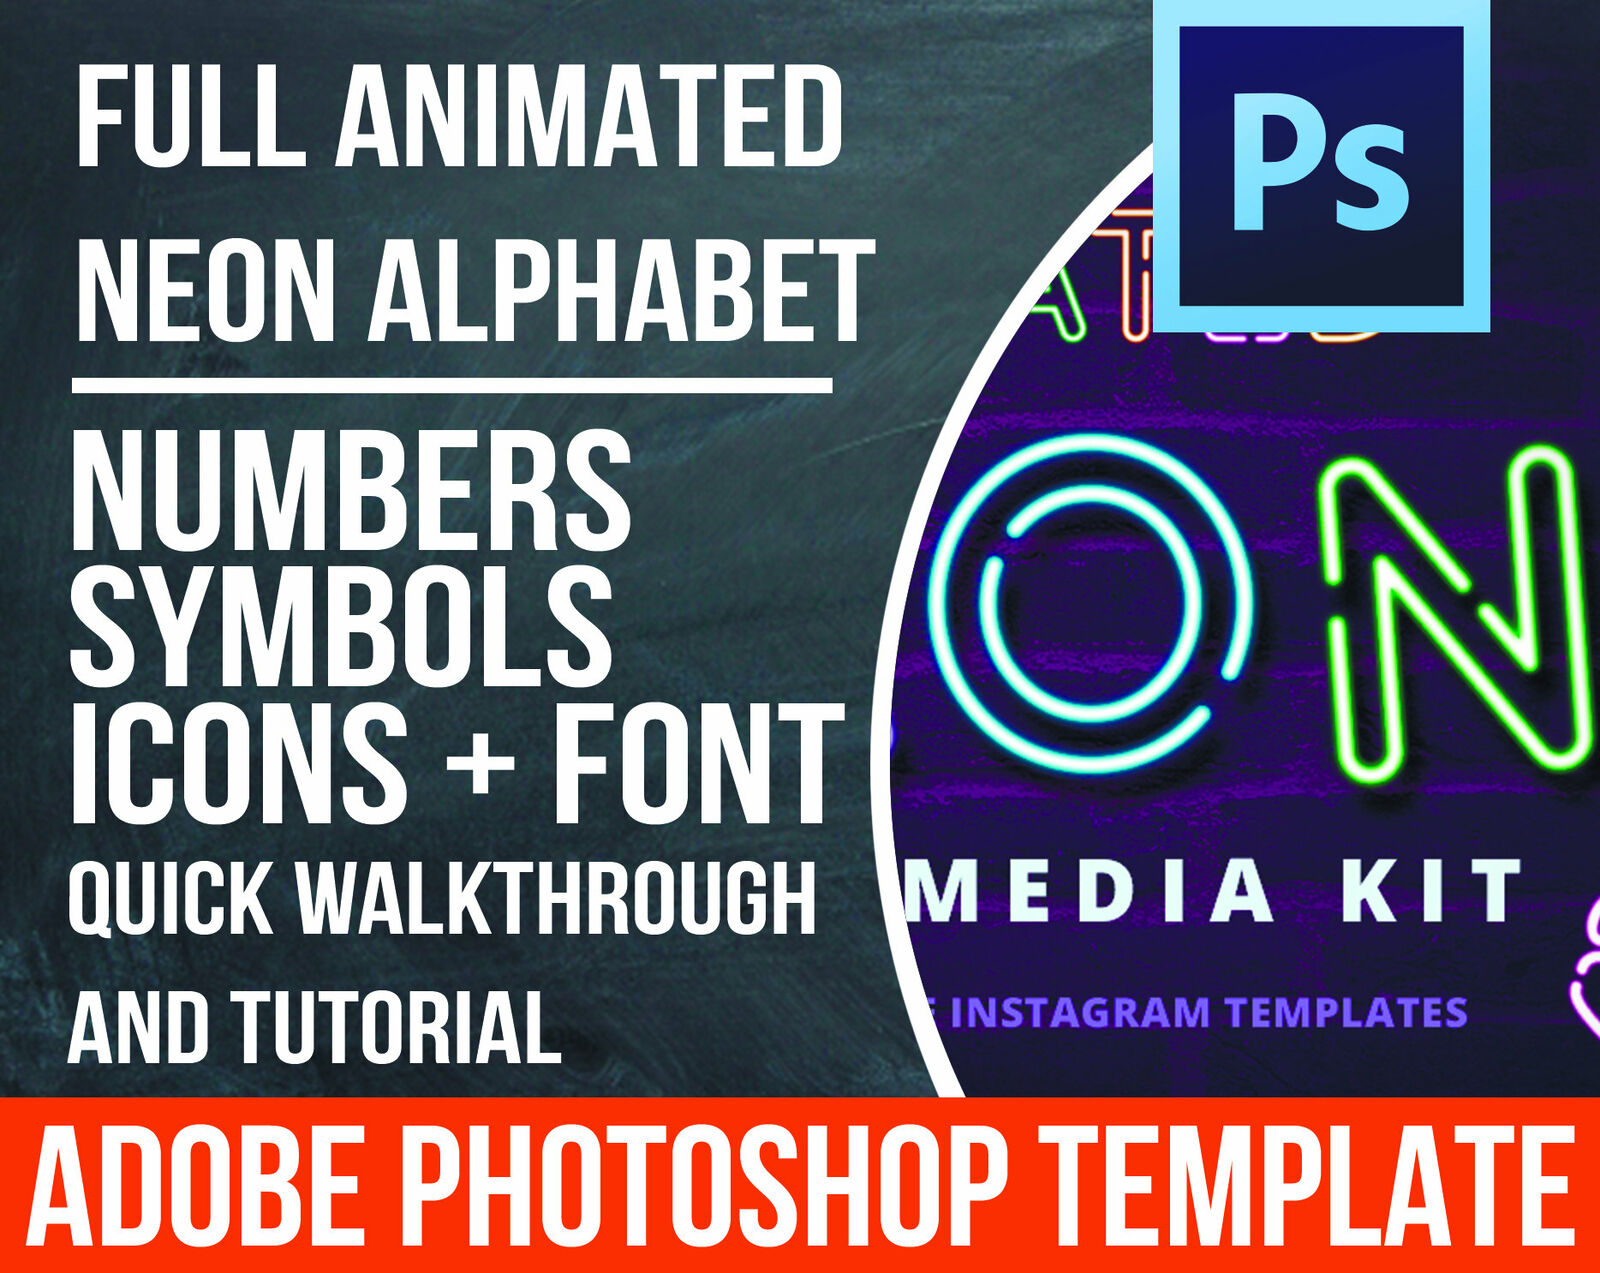 Animated Neon Alphabet For Instagram Stories. PSD Files. Digital Download  - $15.00